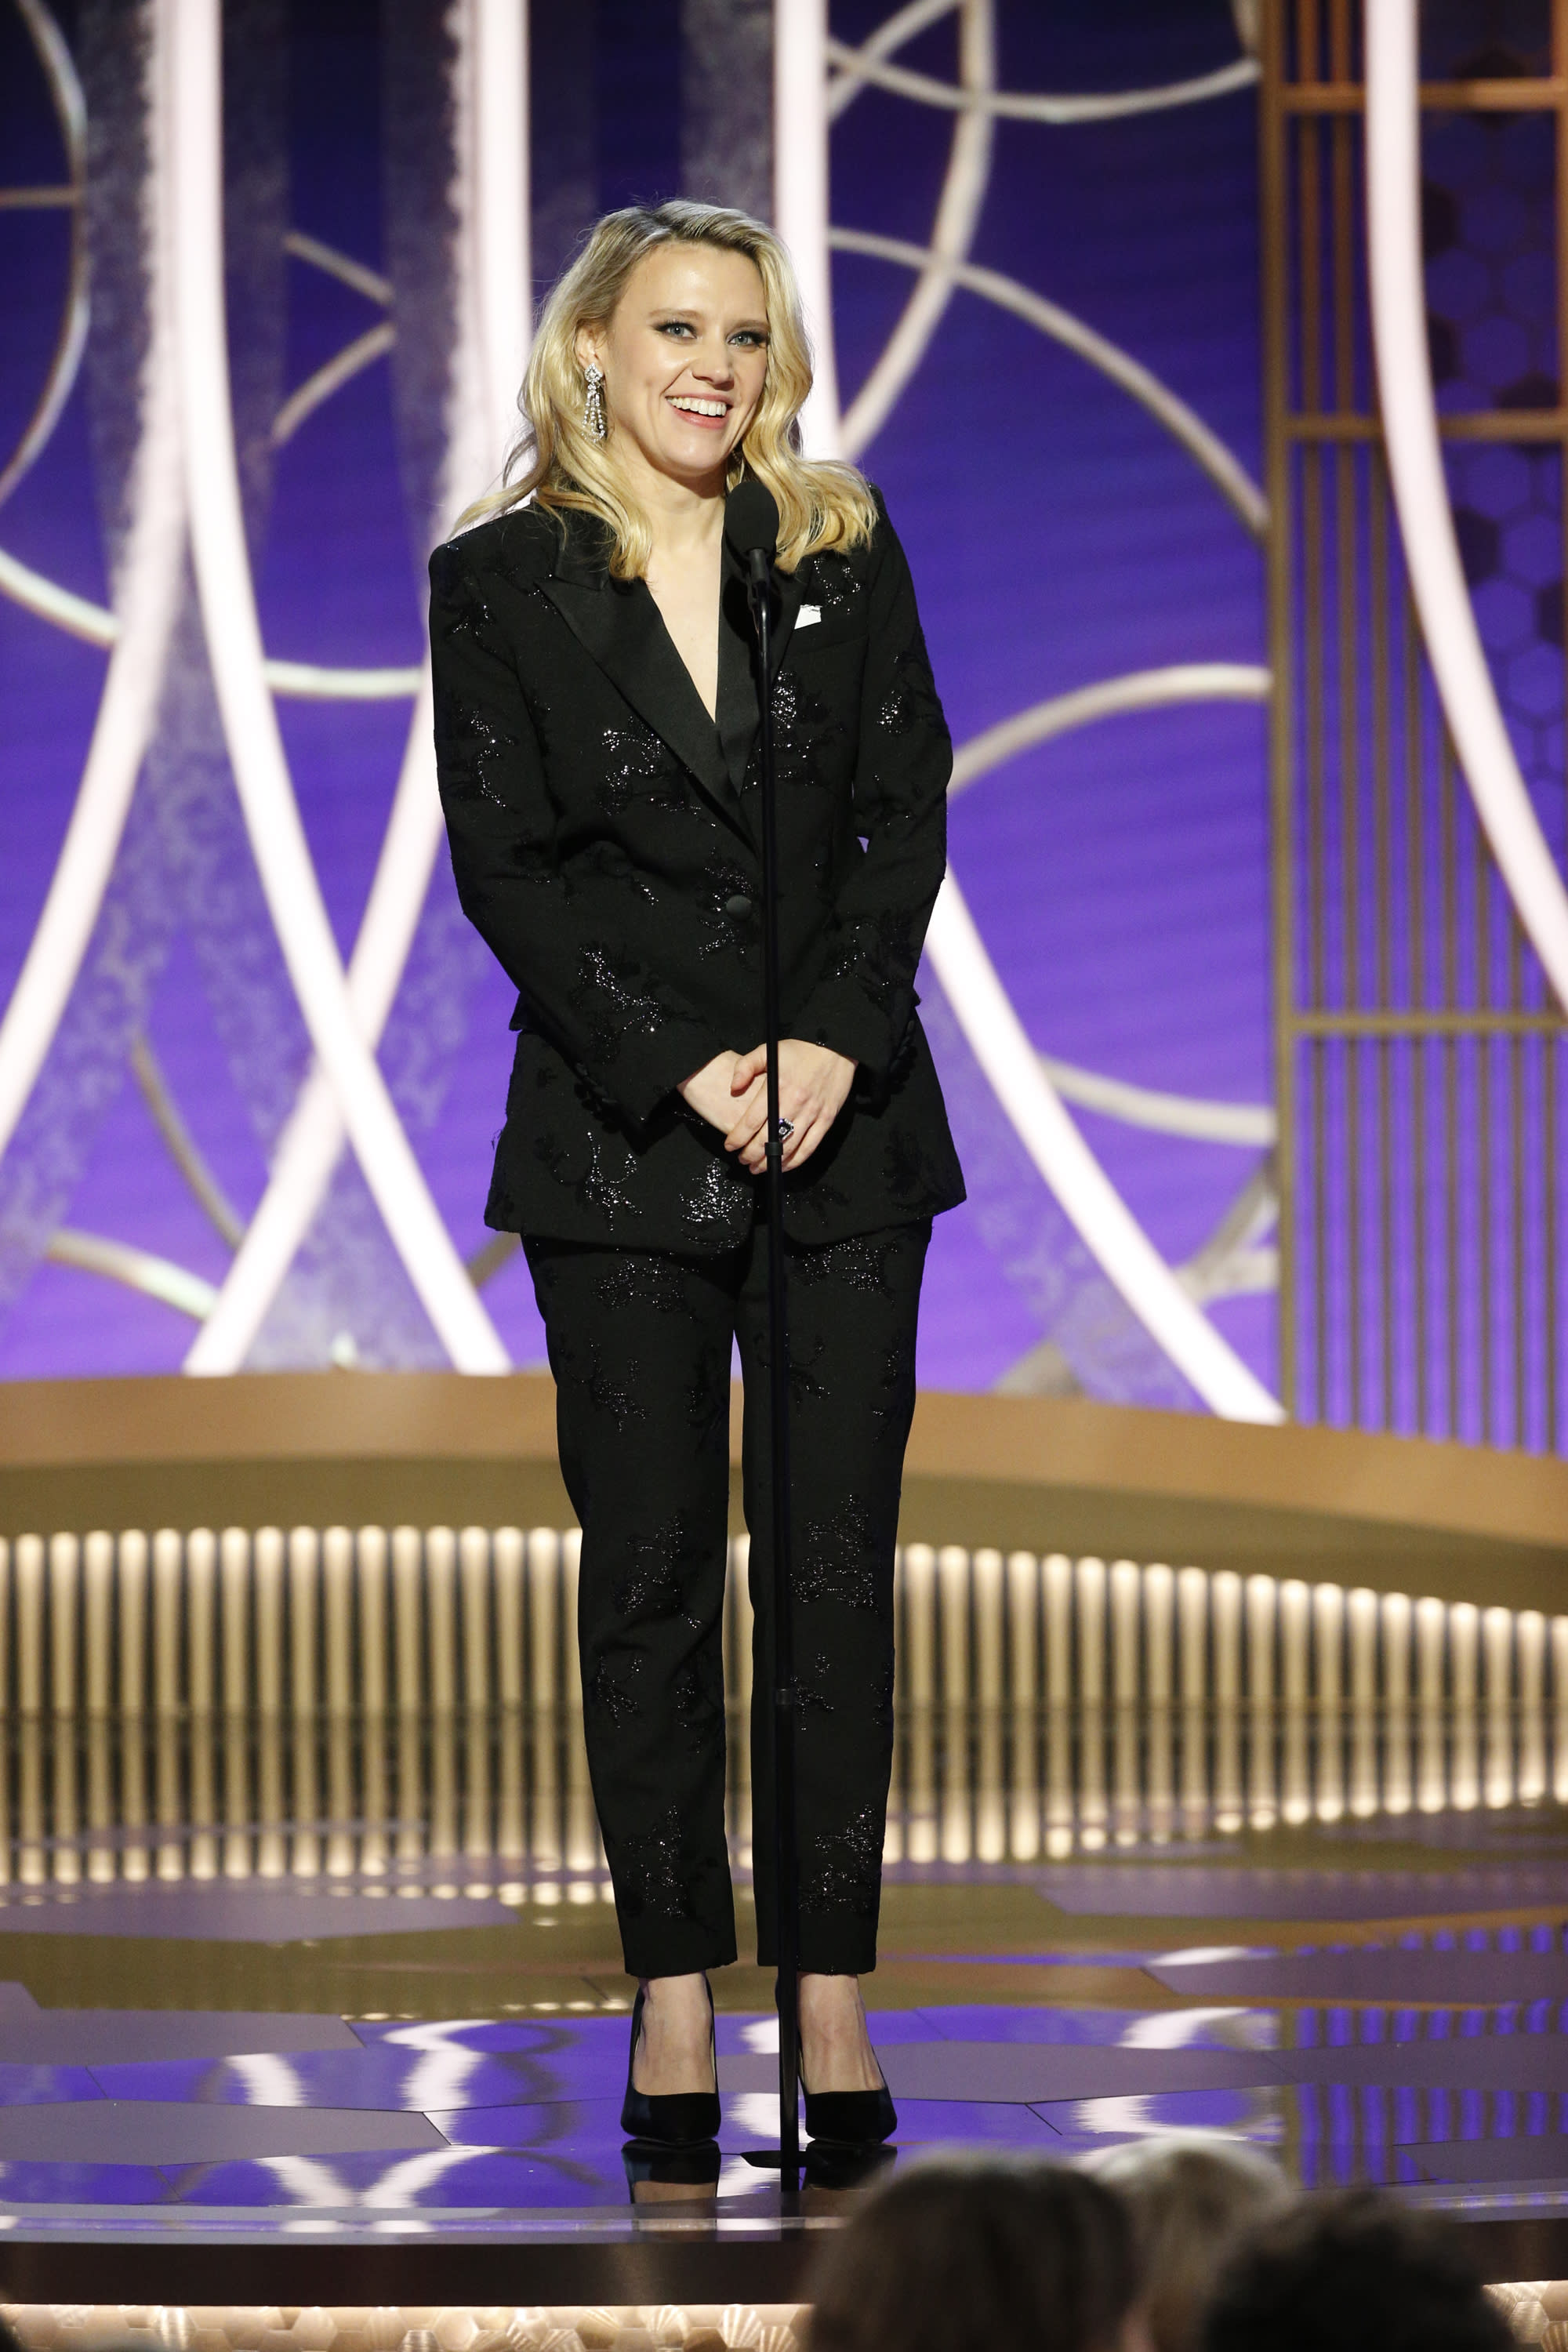 BEVERLY HILLS, CALIFORNIA - JANUARY 05: In this handout photo provided by NBCUniversal Media, LLC, Kate McKinnon speaks onstage during the 77th Annual Golden Globe Awards at The Beverly Hilton Hotel on January 5, 2020 in Beverly Hills, California. (Photo by Paul Drinkwater/NBCUniversal Media, LLC via Getty Images)